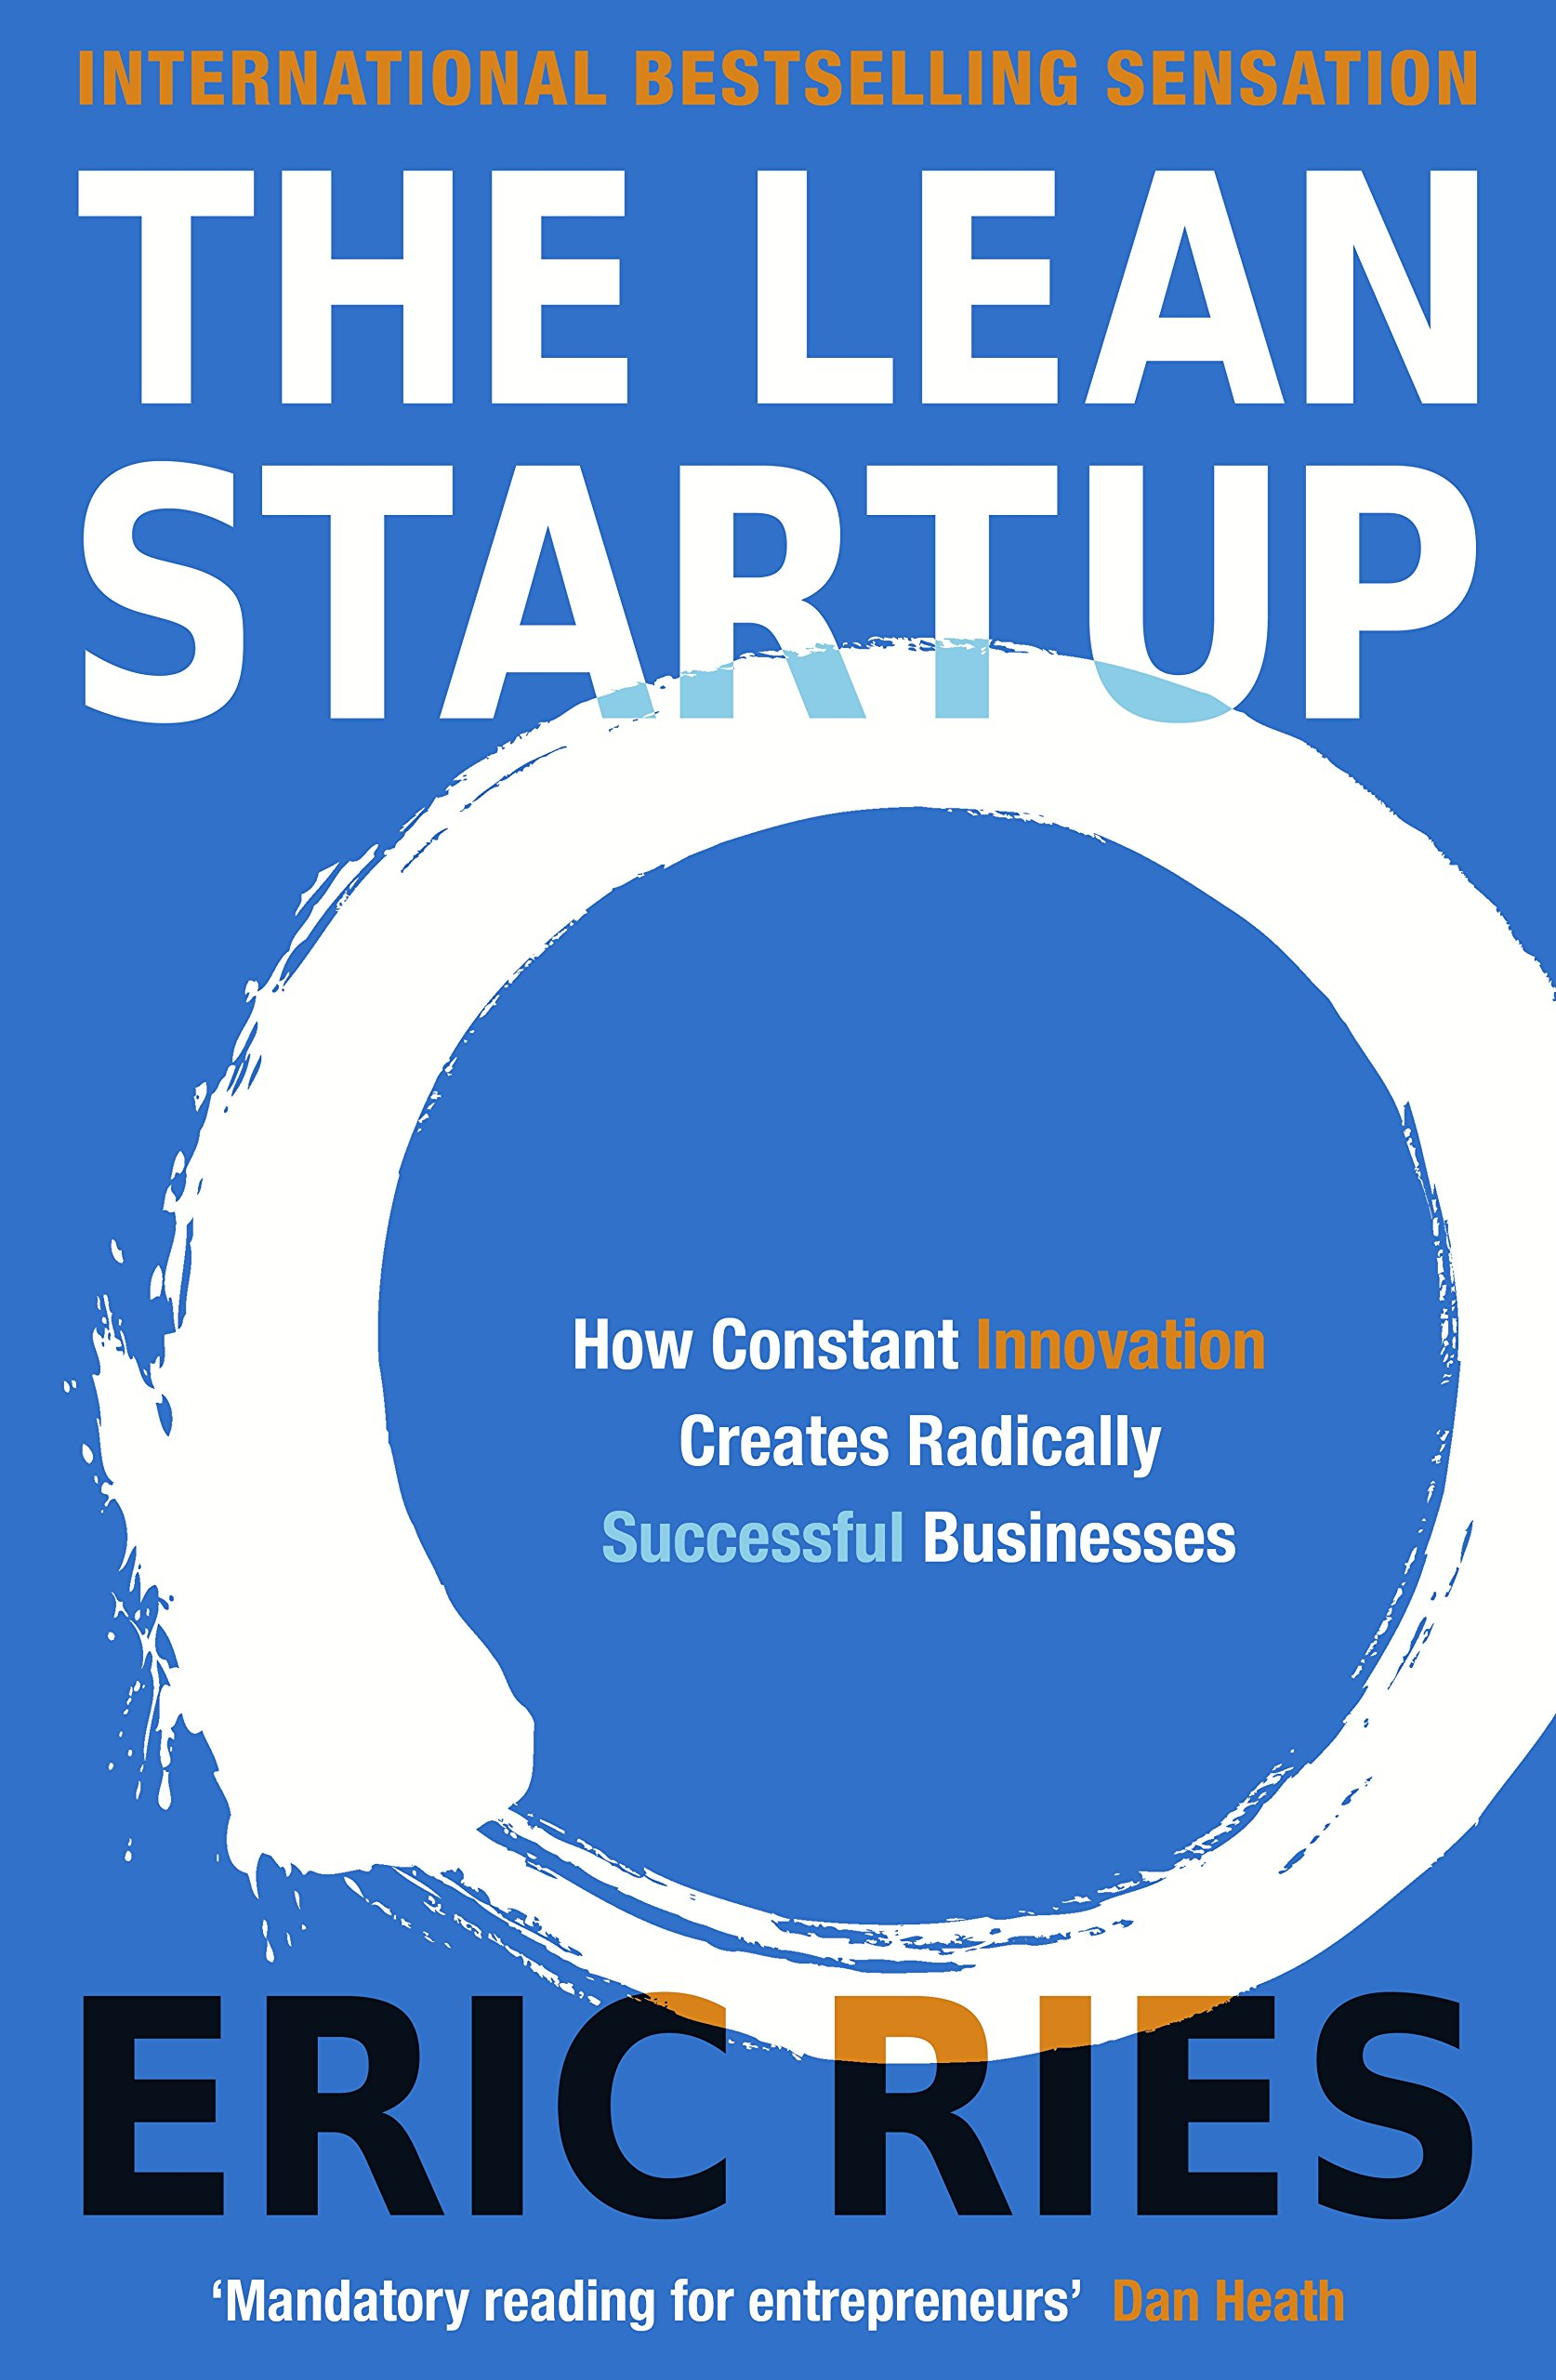 Book Review - The Lean Startup by Eric Ries